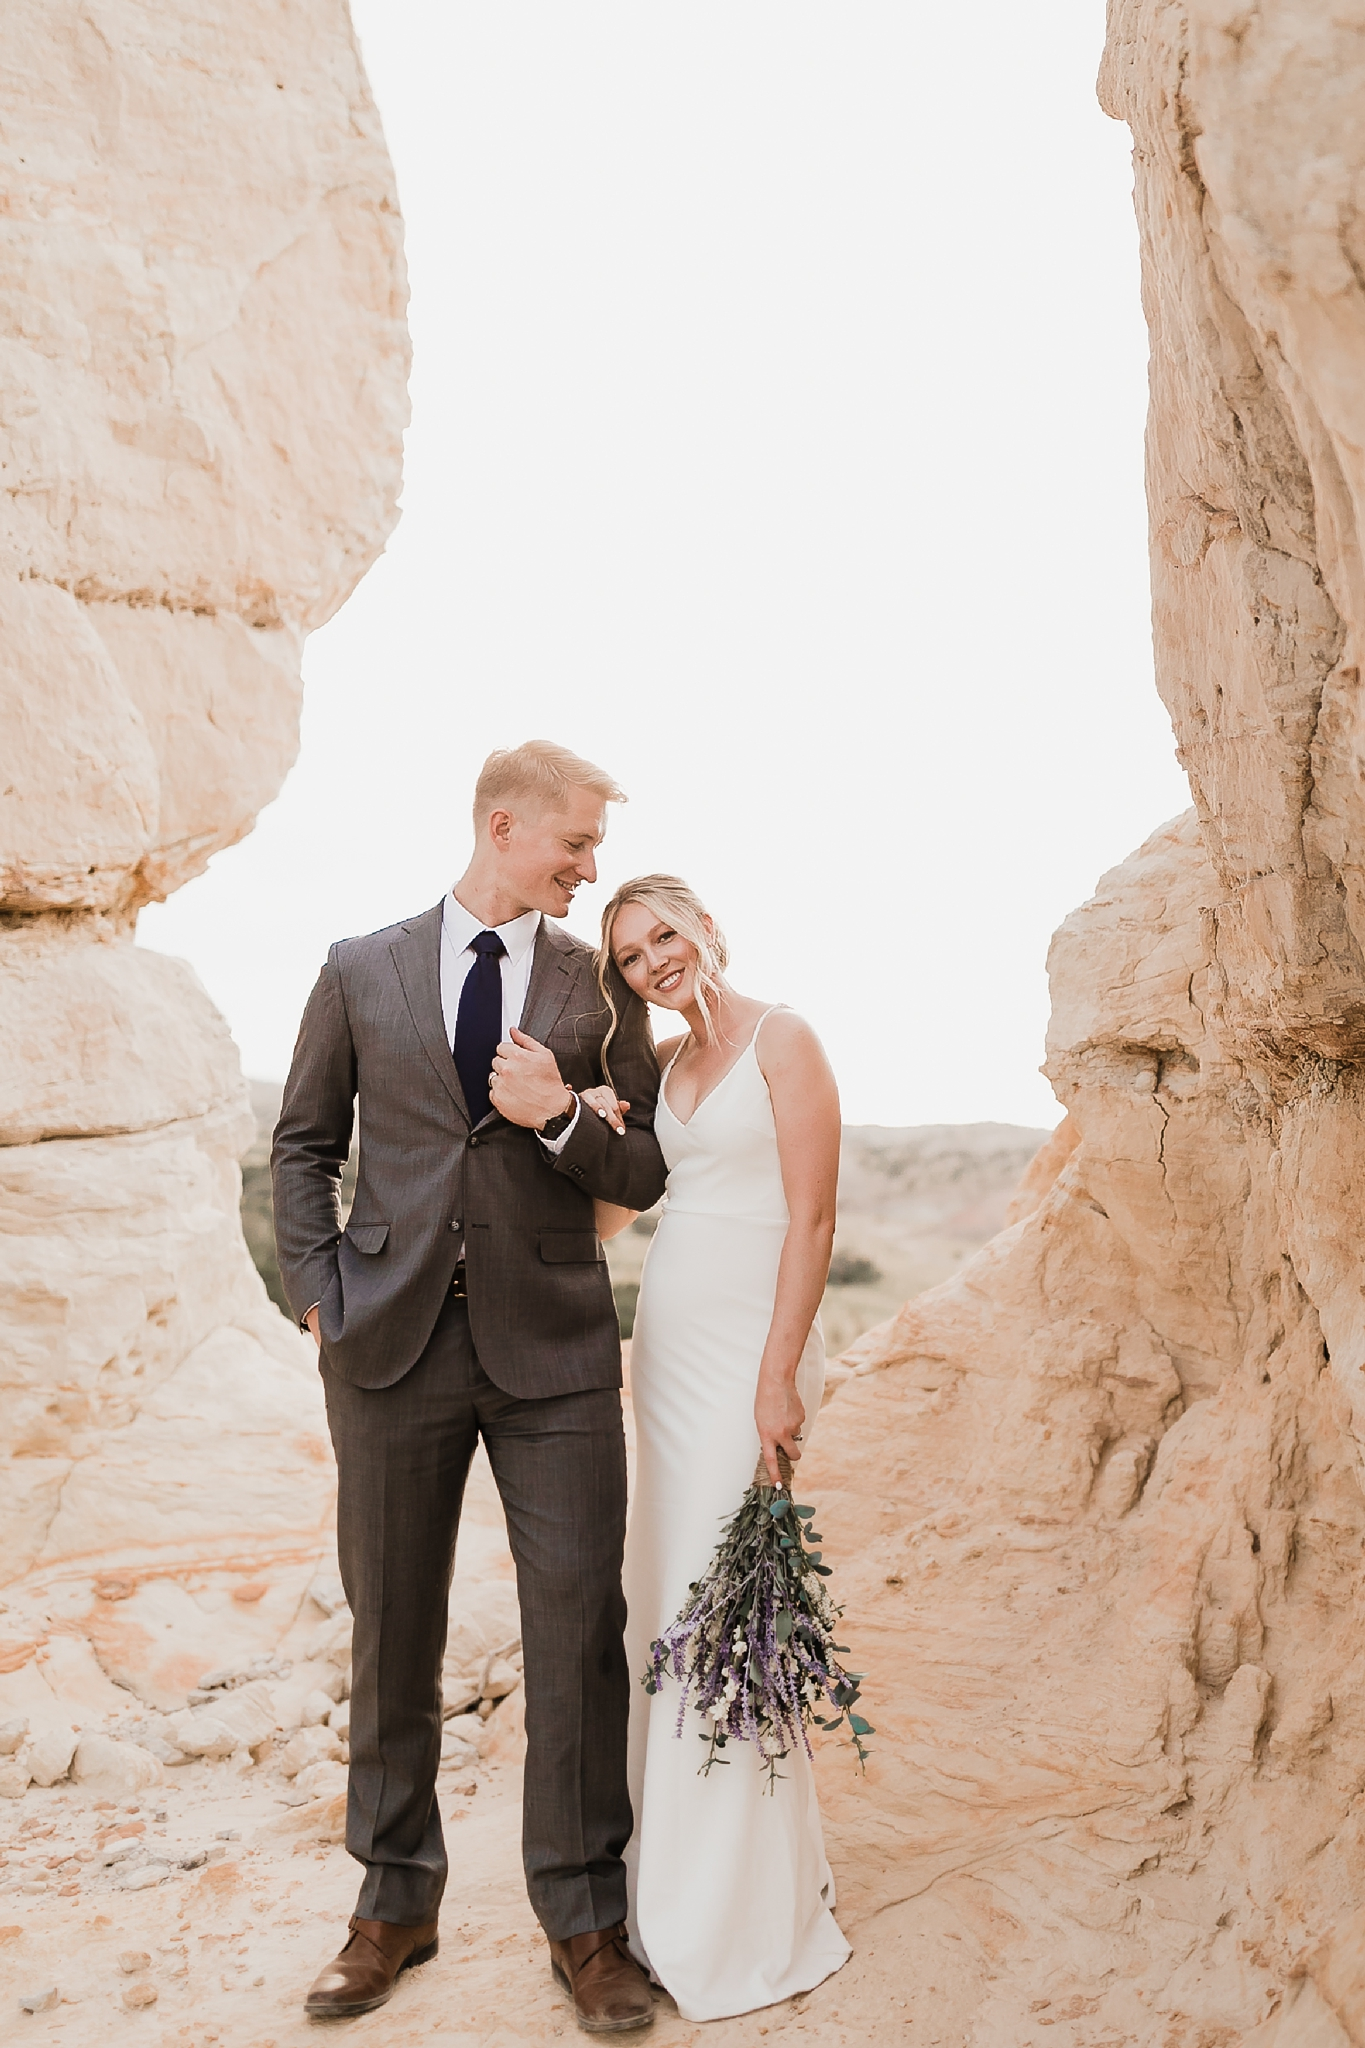 Alicia+lucia+photography+-+albuquerque+wedding+photographer+-+santa+fe+wedding+photography+-+new+mexico+wedding+photographer+-+new+mexico+wedding+-+new+mexico+elopement+-+elopment+-+mountain+elopement_0019.jpg